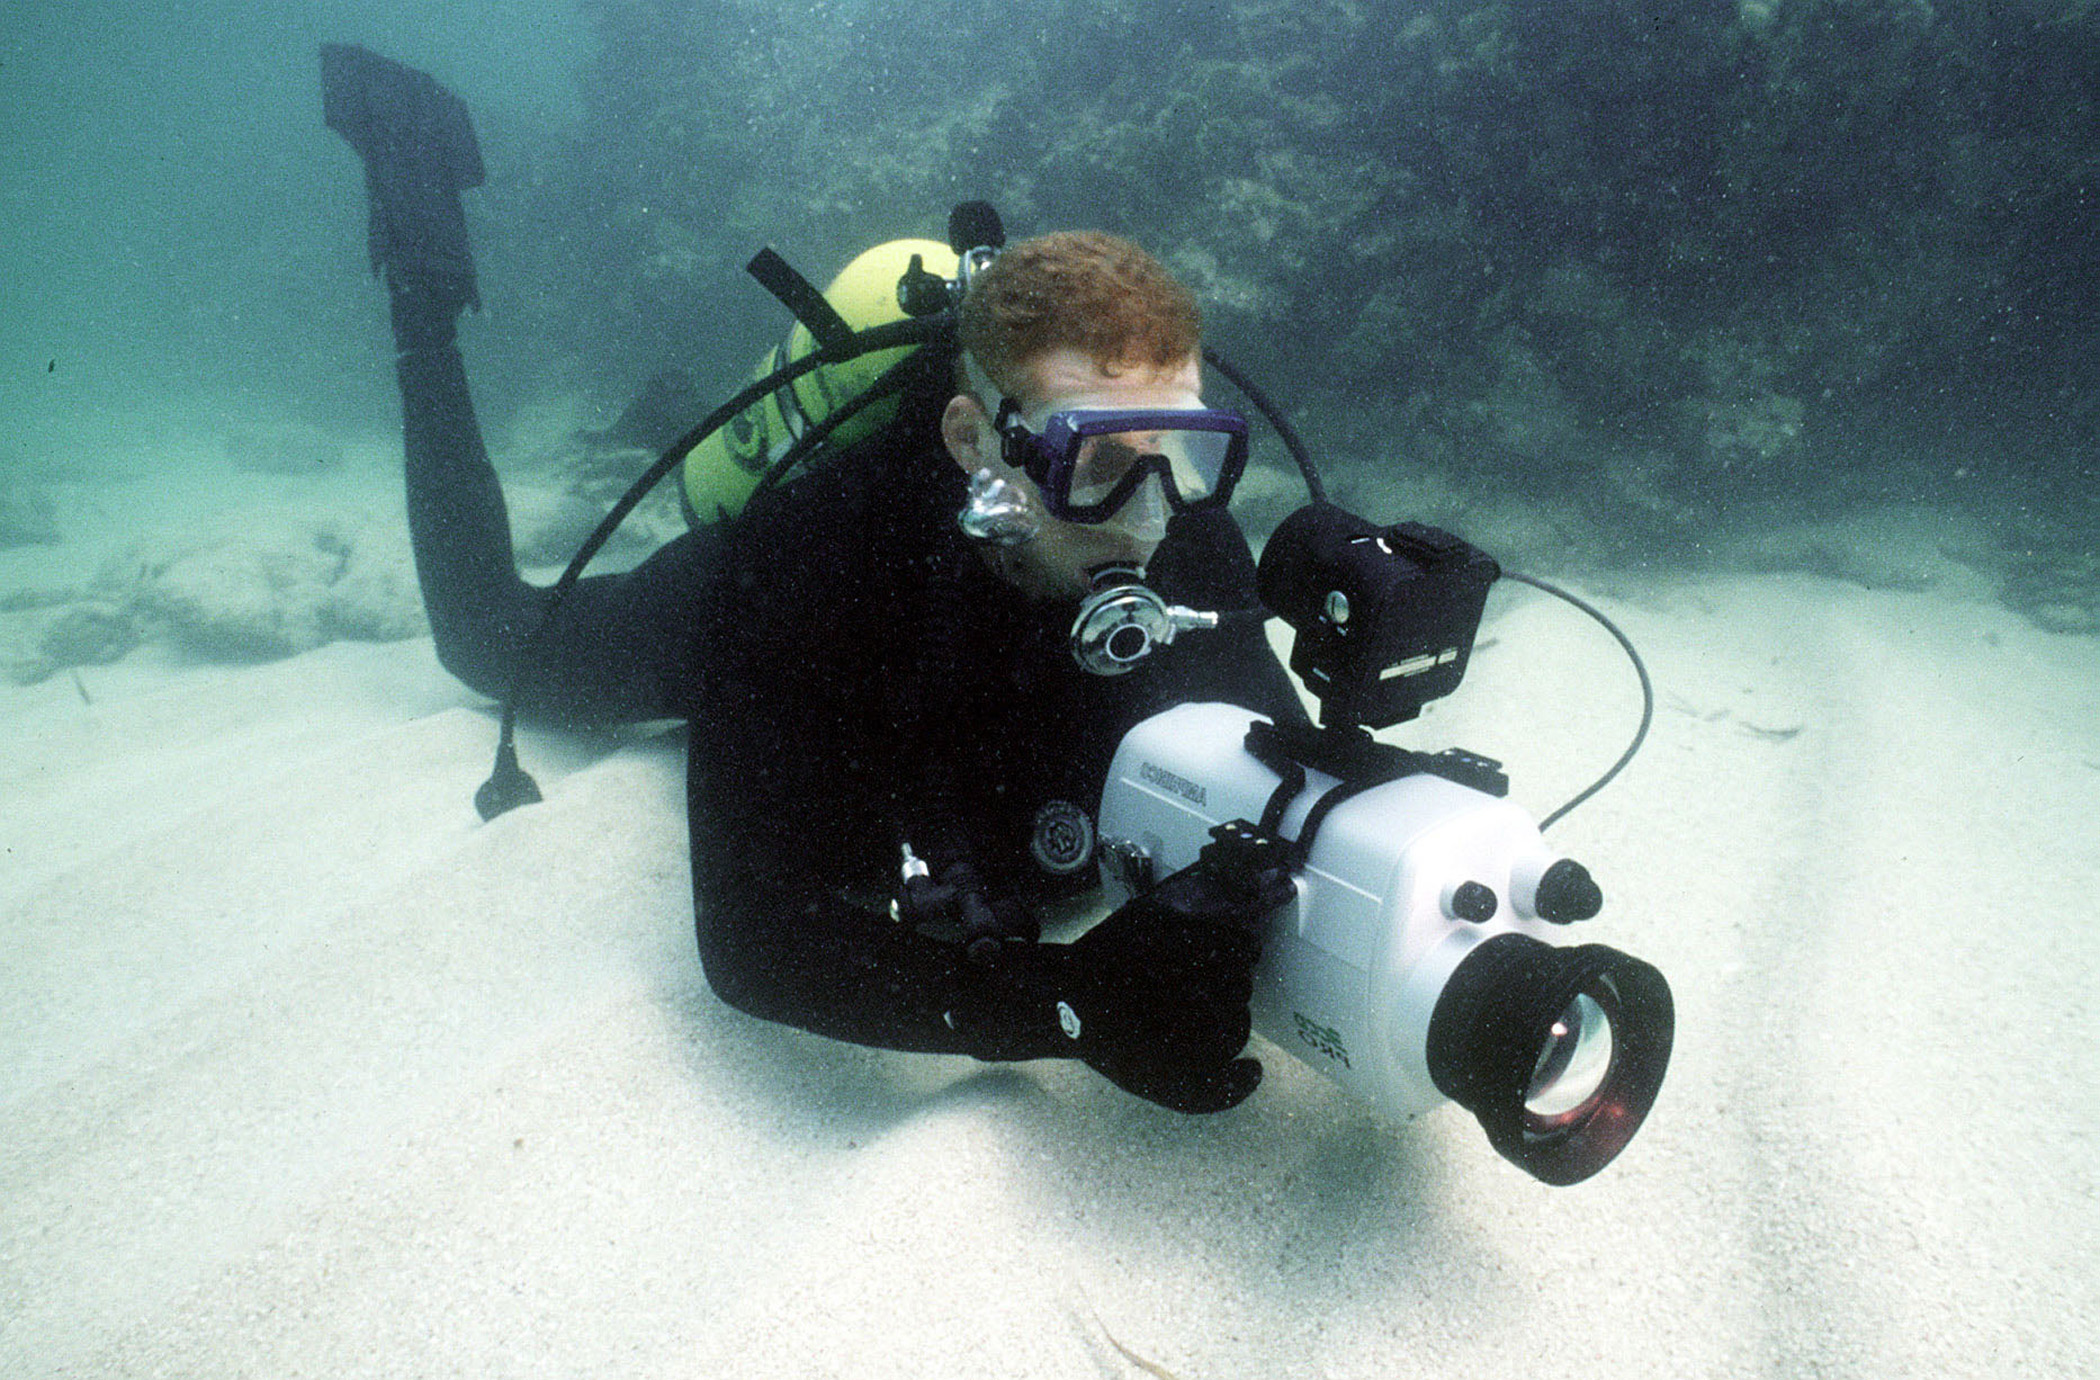 960308-N-3093M-010 Navy Photographic Diver